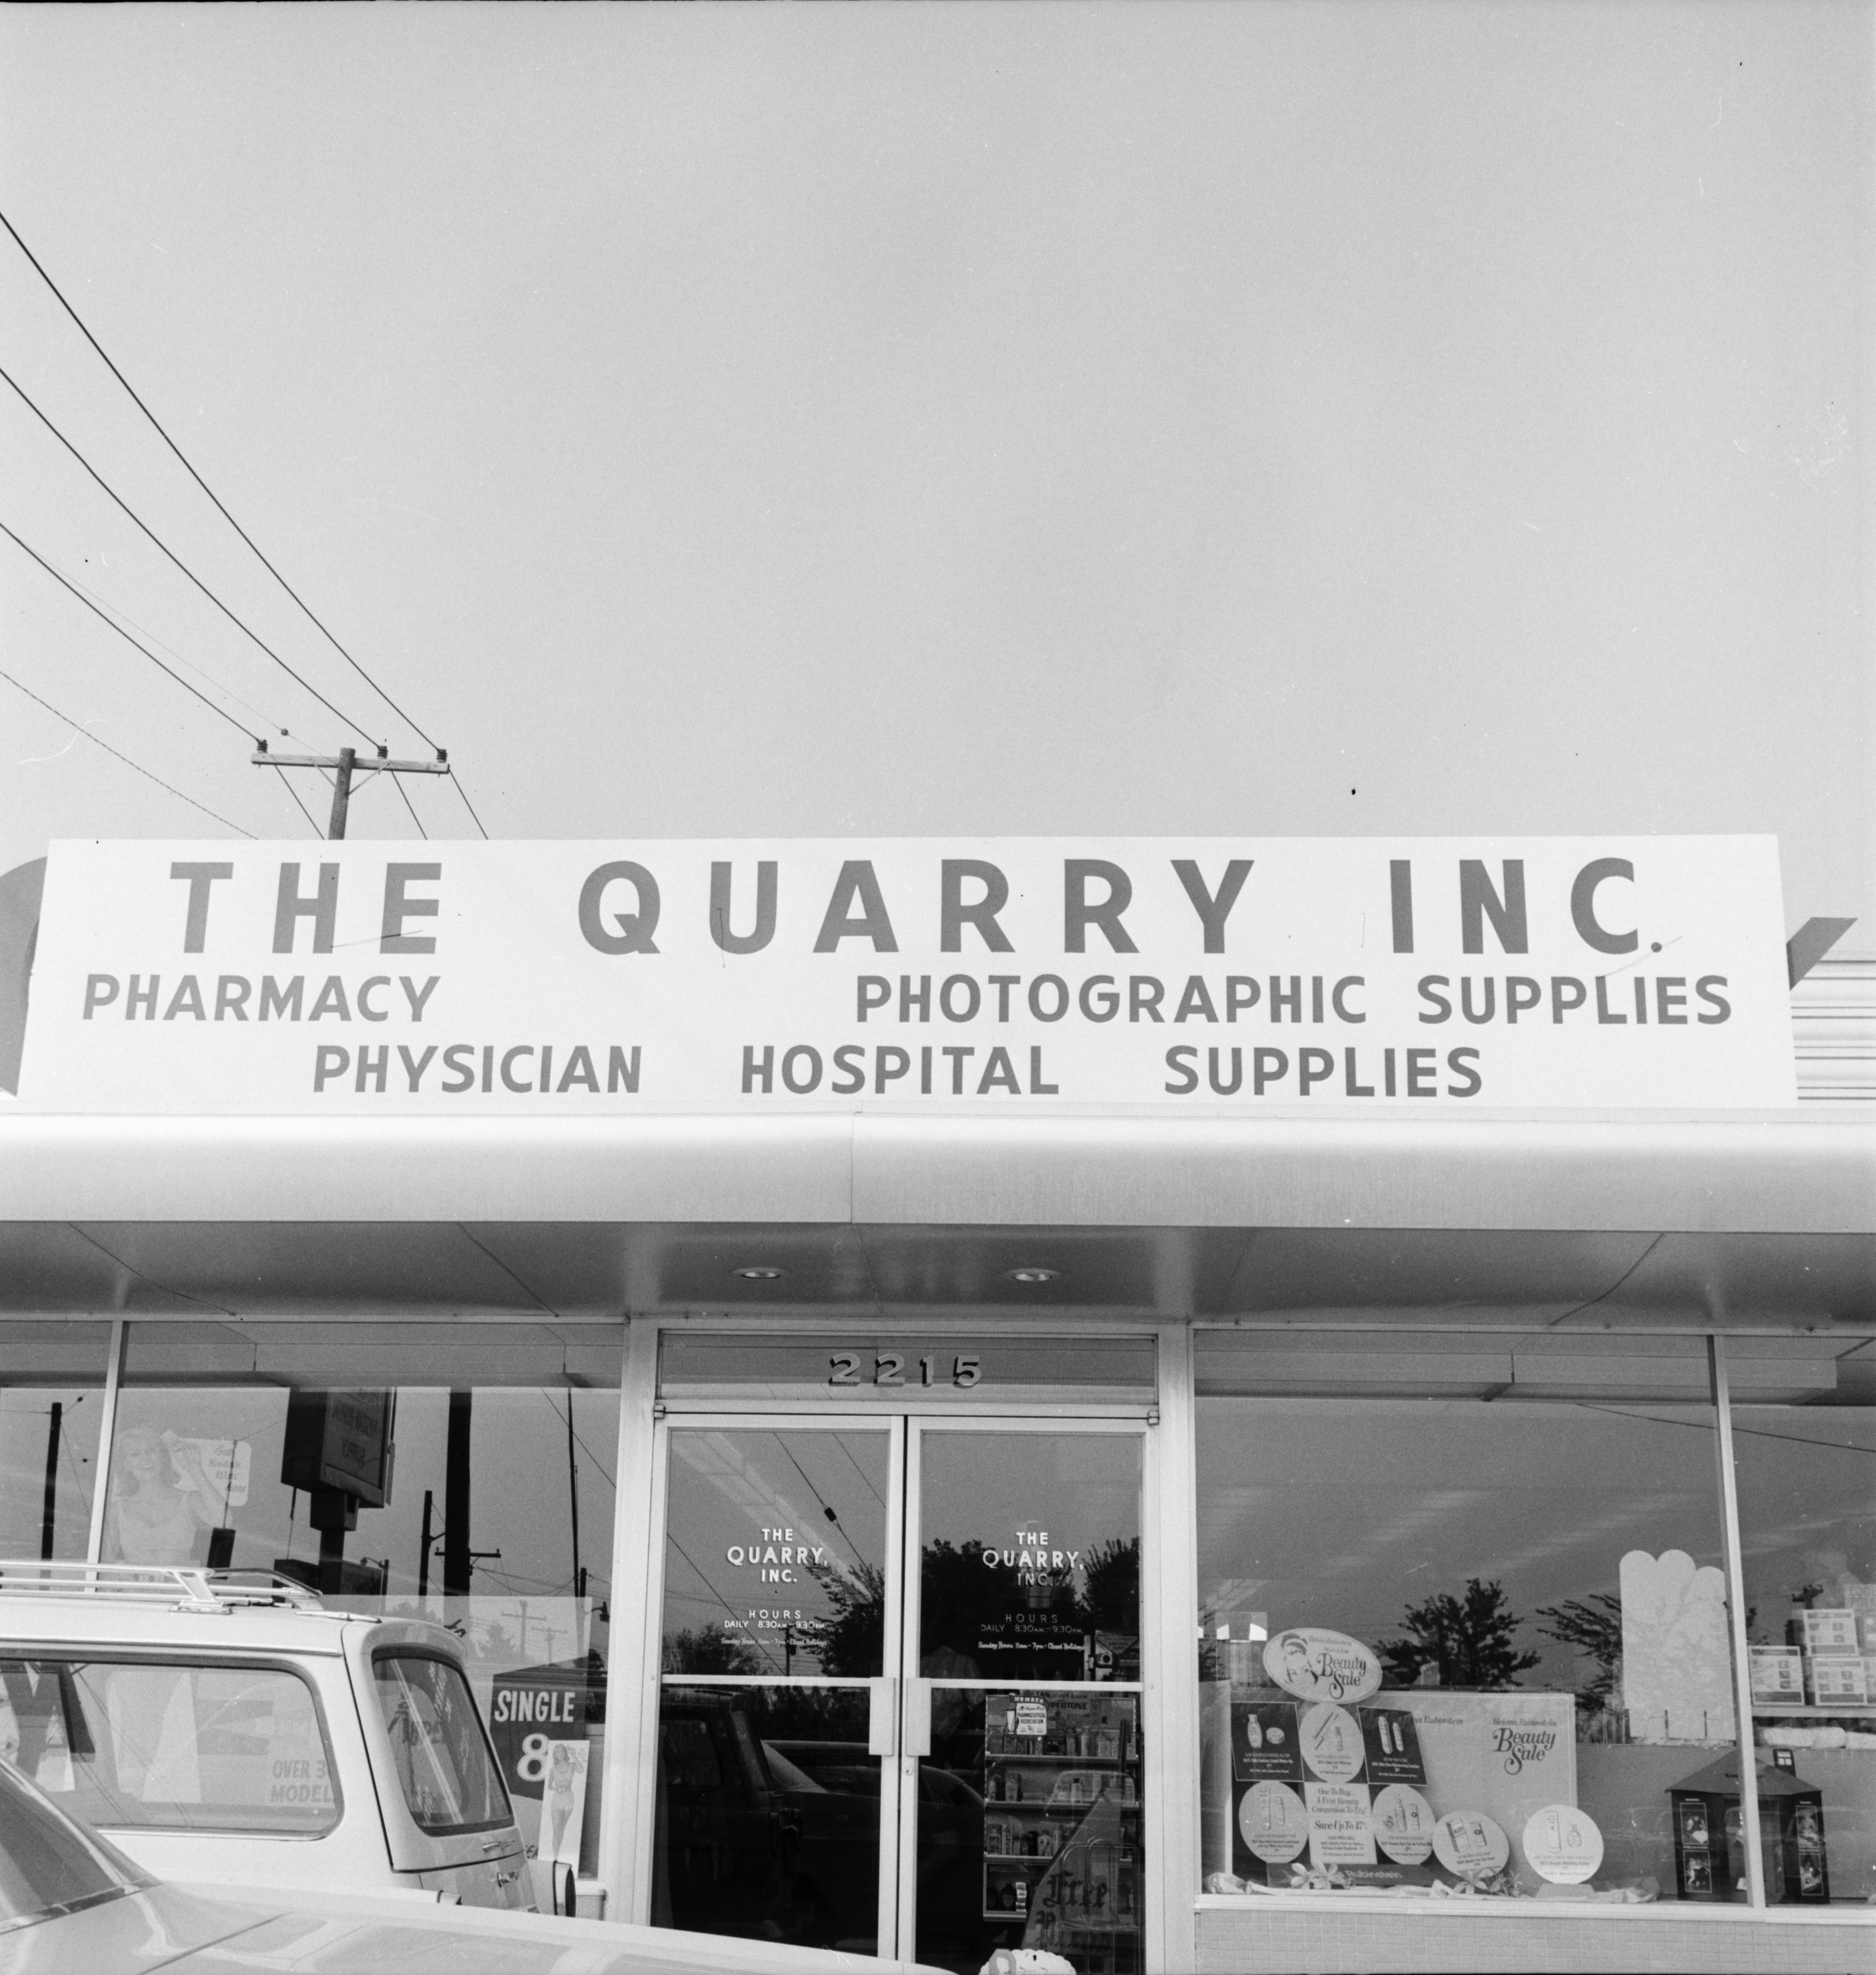 Ann Arbor Chamber of Commerce Sample Sign at The Quarry Inc., August 1966 image